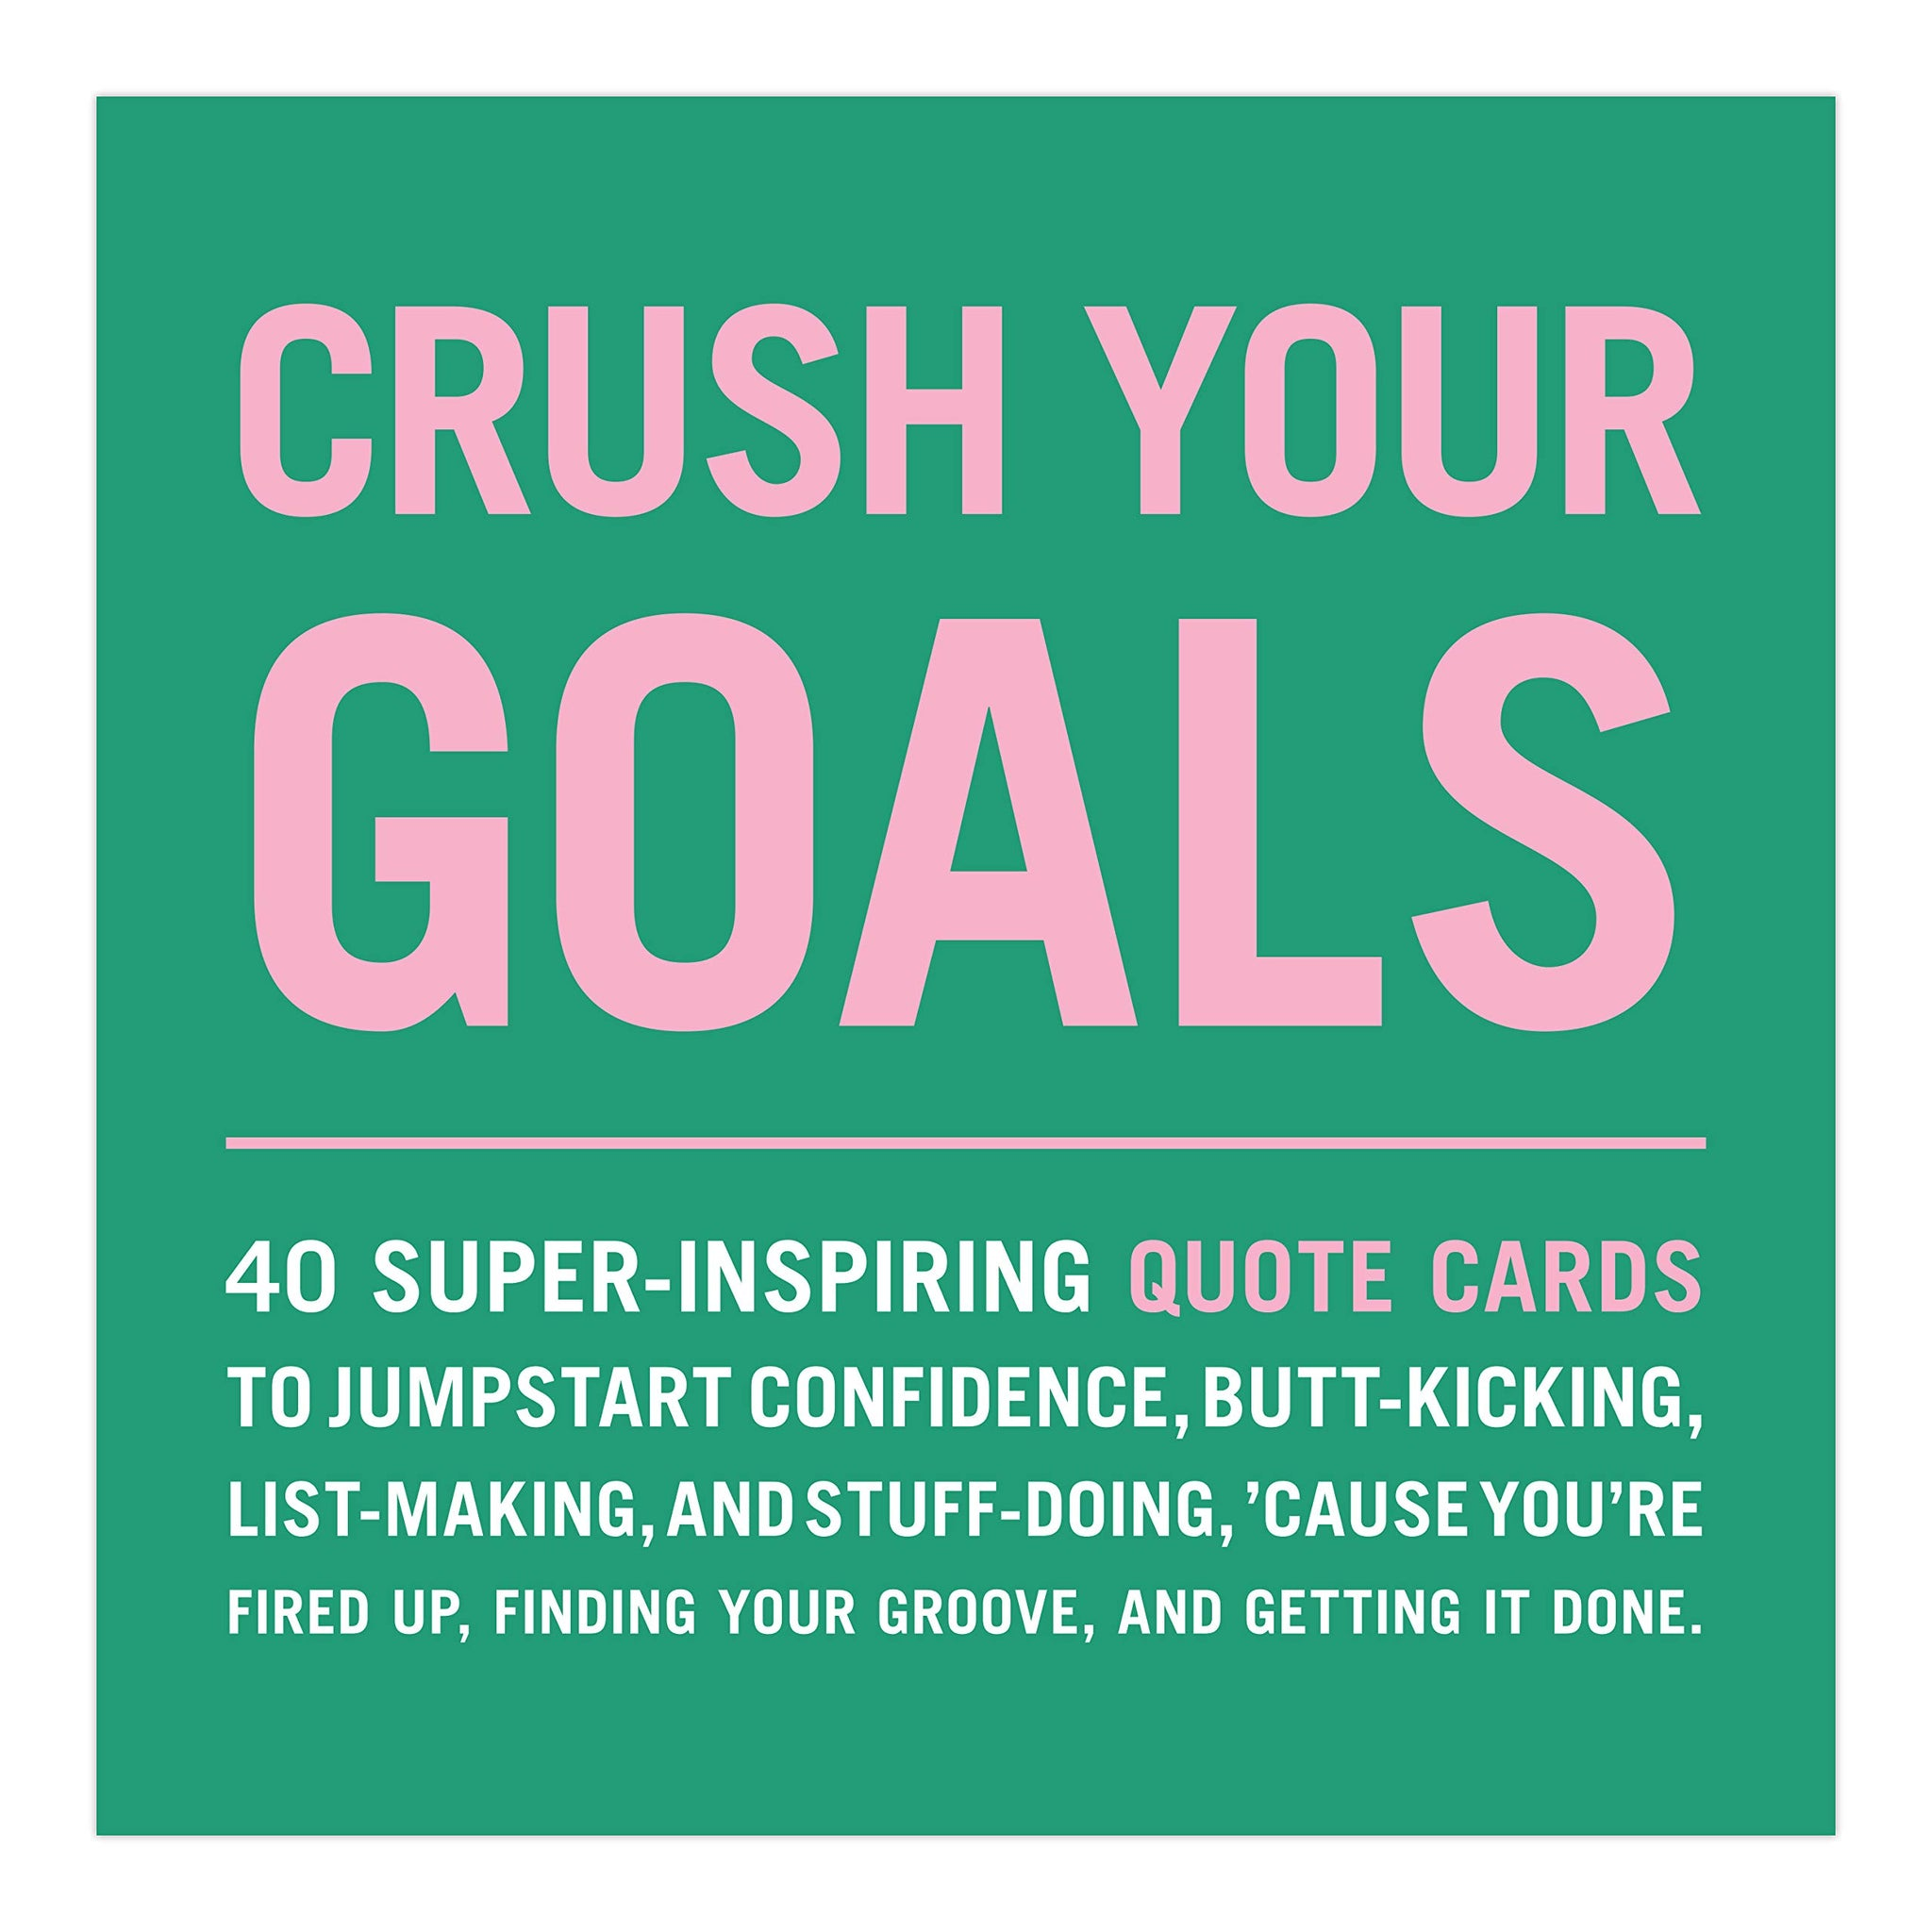 Crush Your Goals Deck - Let's Talk Coaching